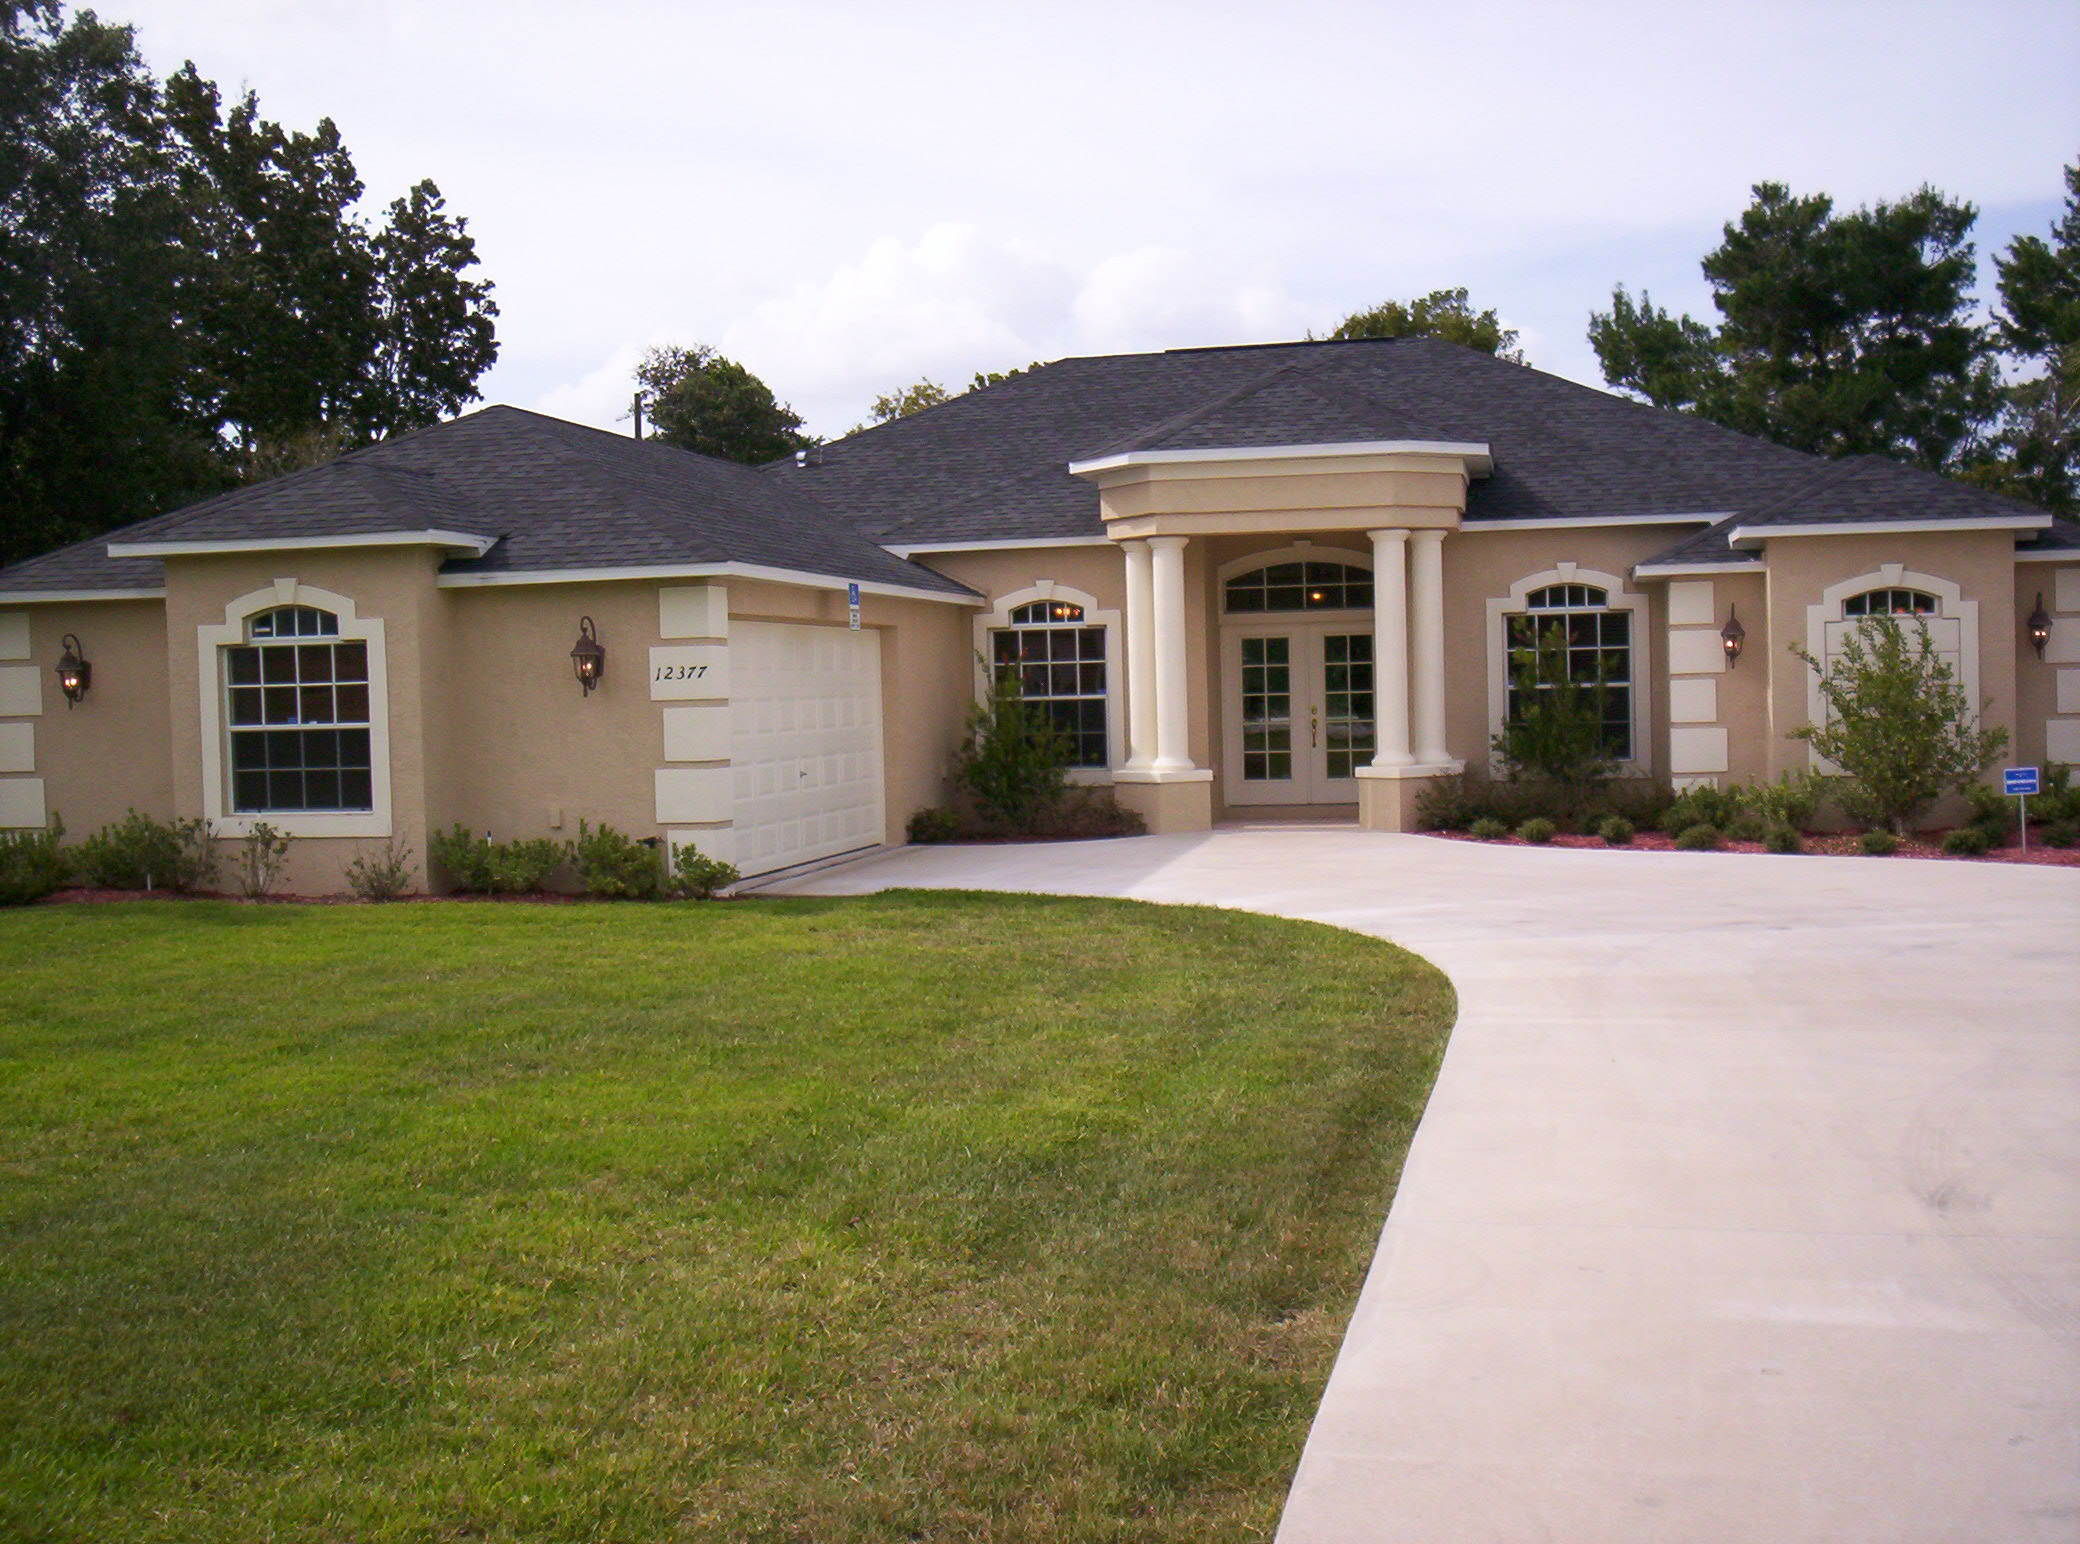 Spec homes for sale model homes for sale in citrus county for Houses models